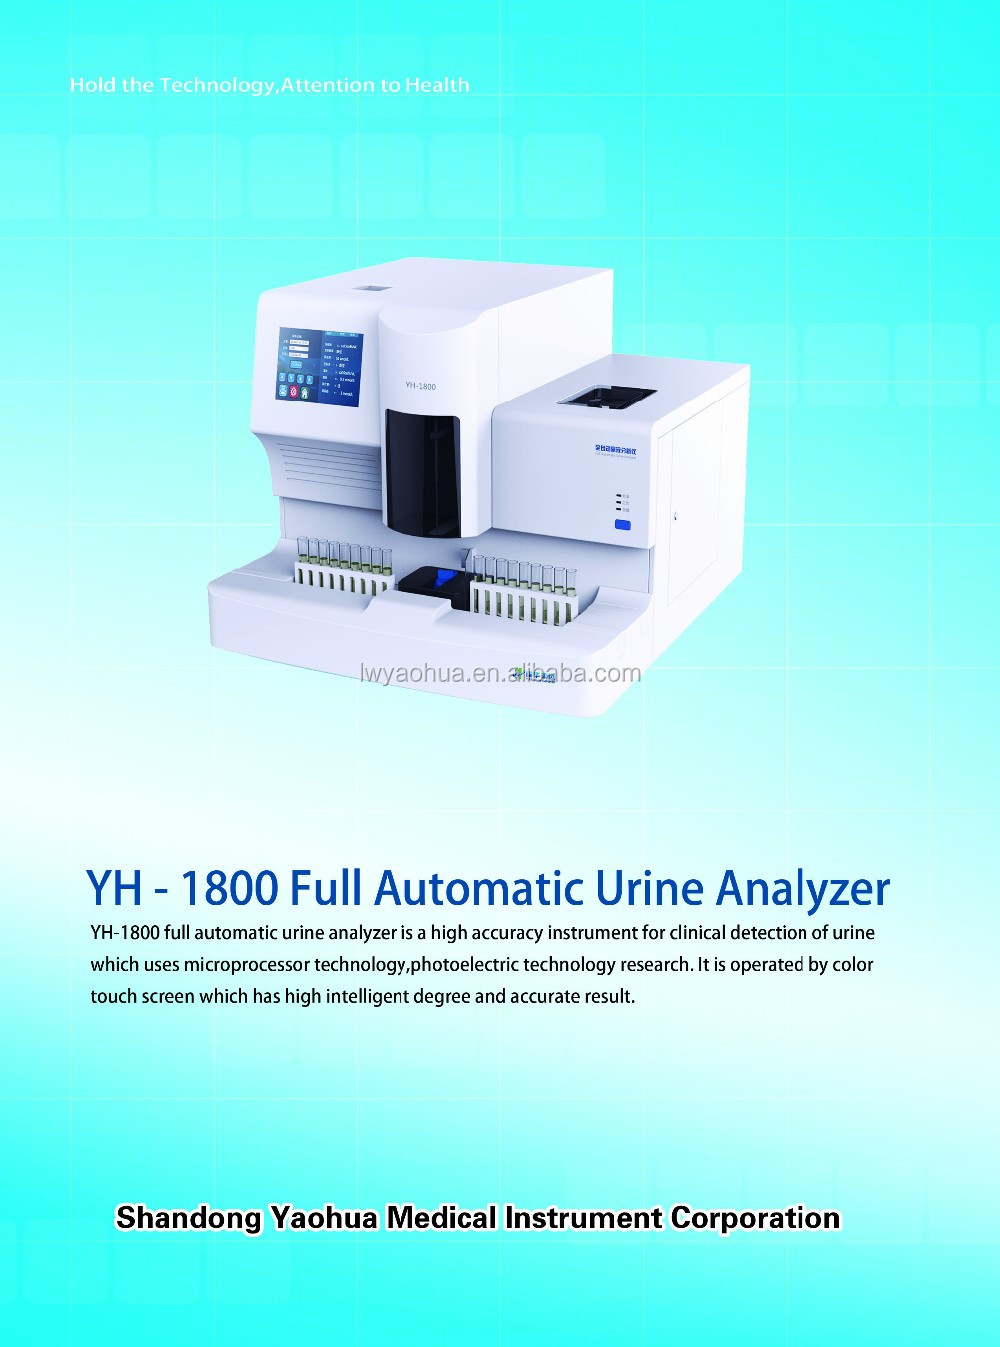 YH1800 Automatic Urine Analyzer